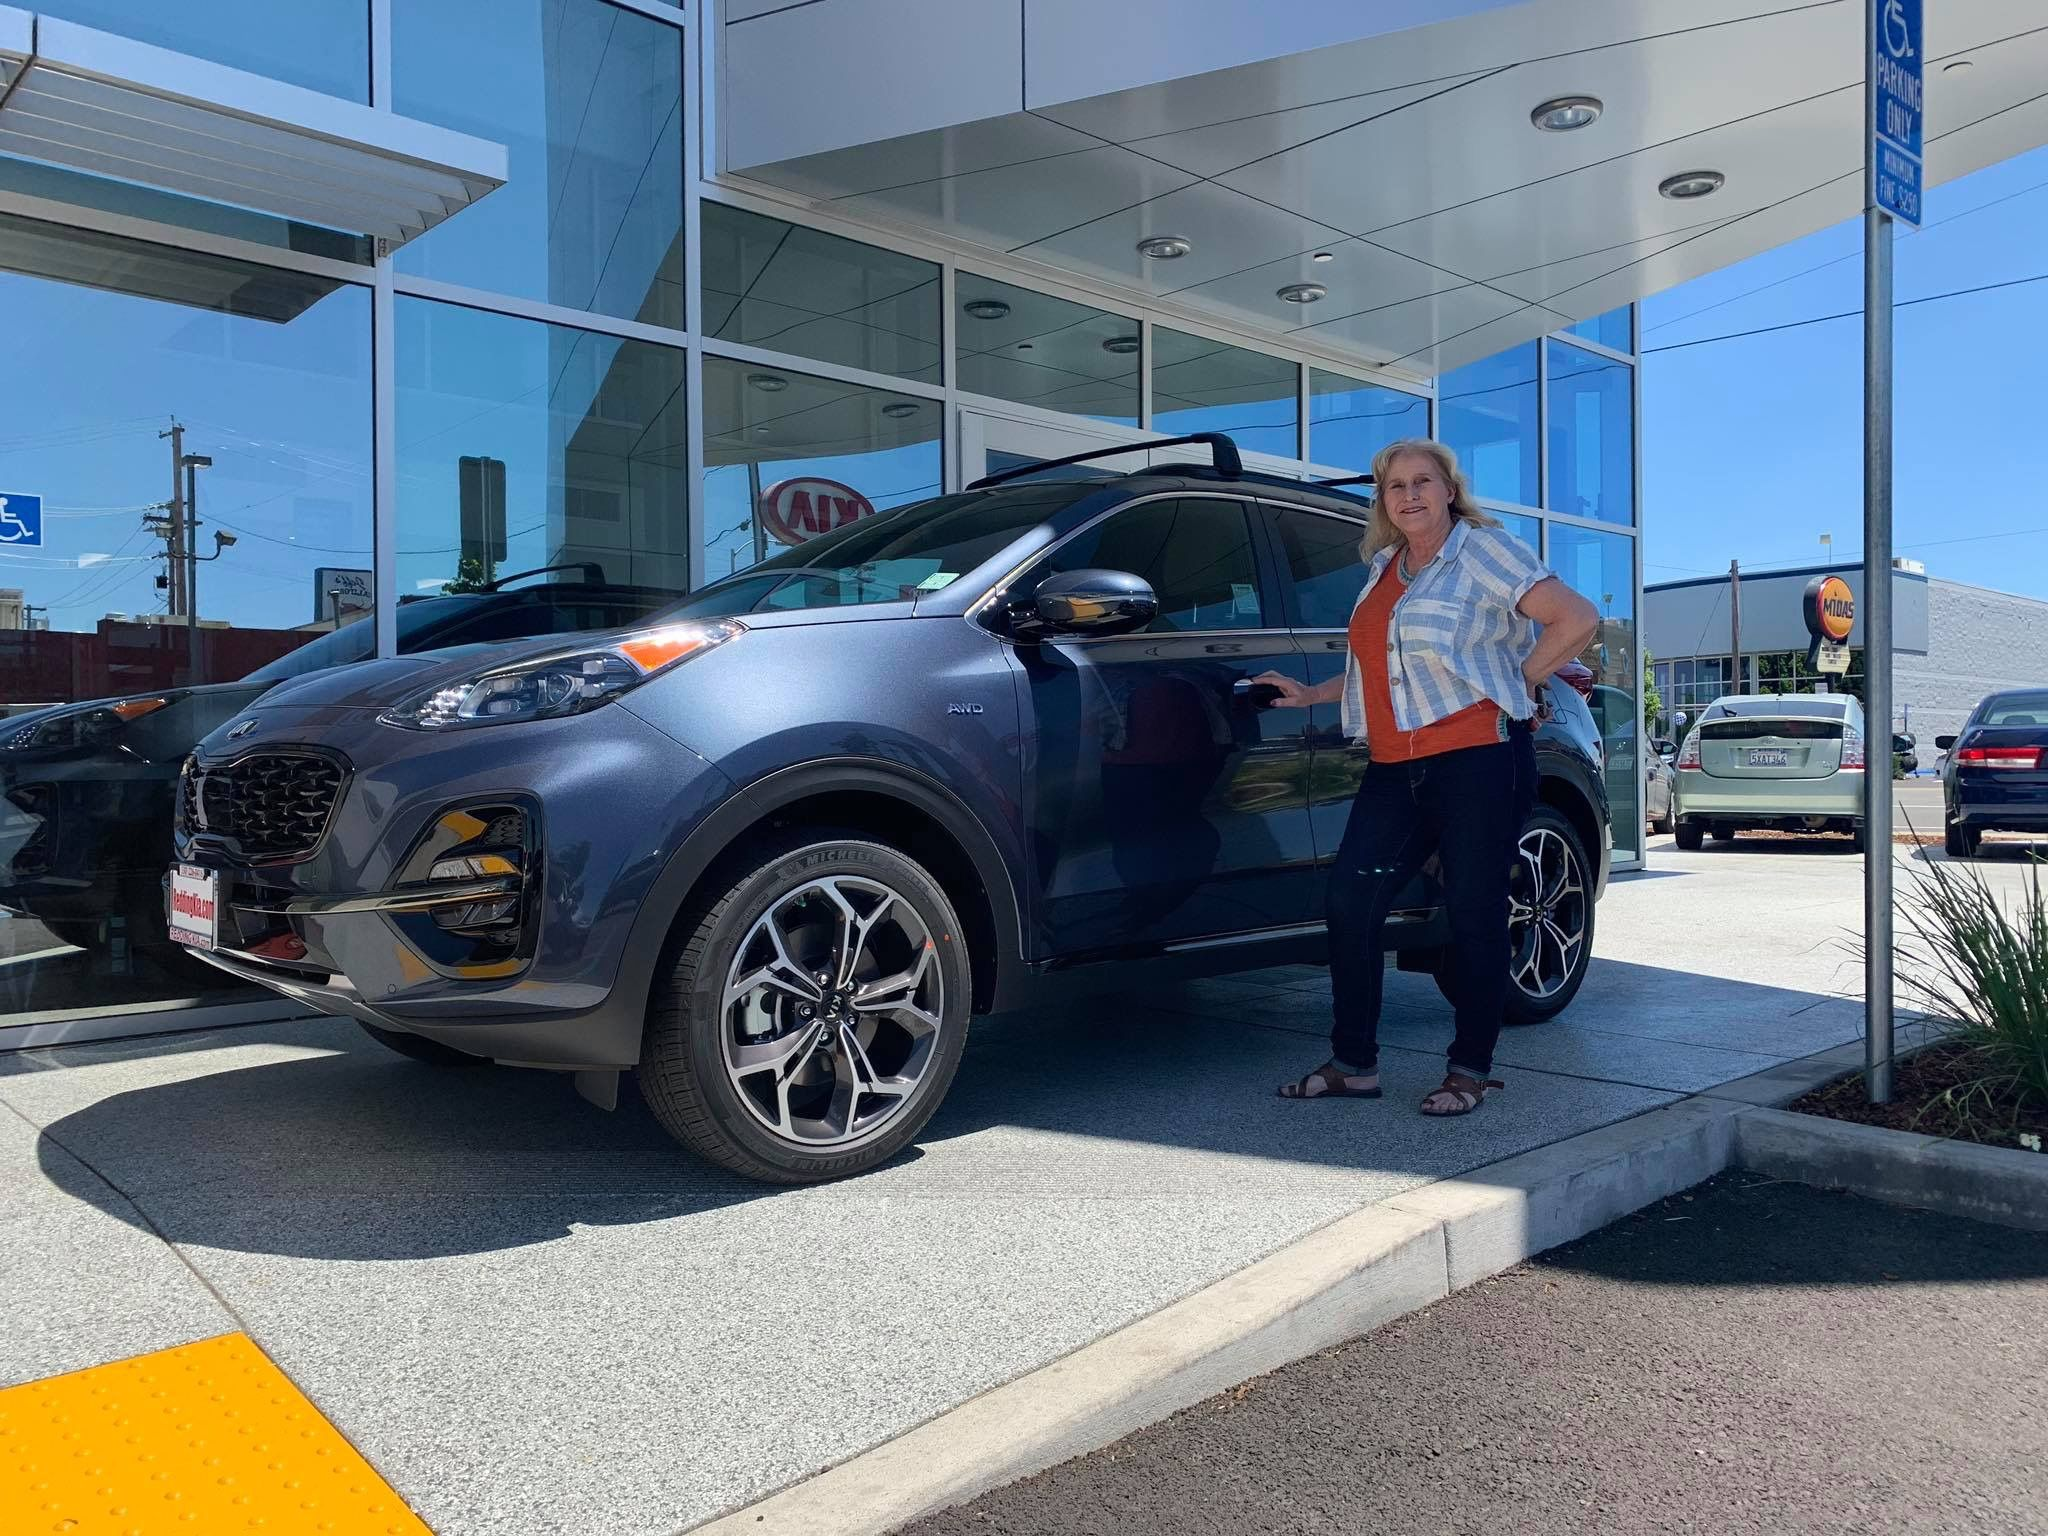 Congratulations Donetta Sergeeff On Your Brand New 2020 Kia Sportage With The Turbo Thank You So Much For Your Continued Business Kia Sportage Kia Sportage